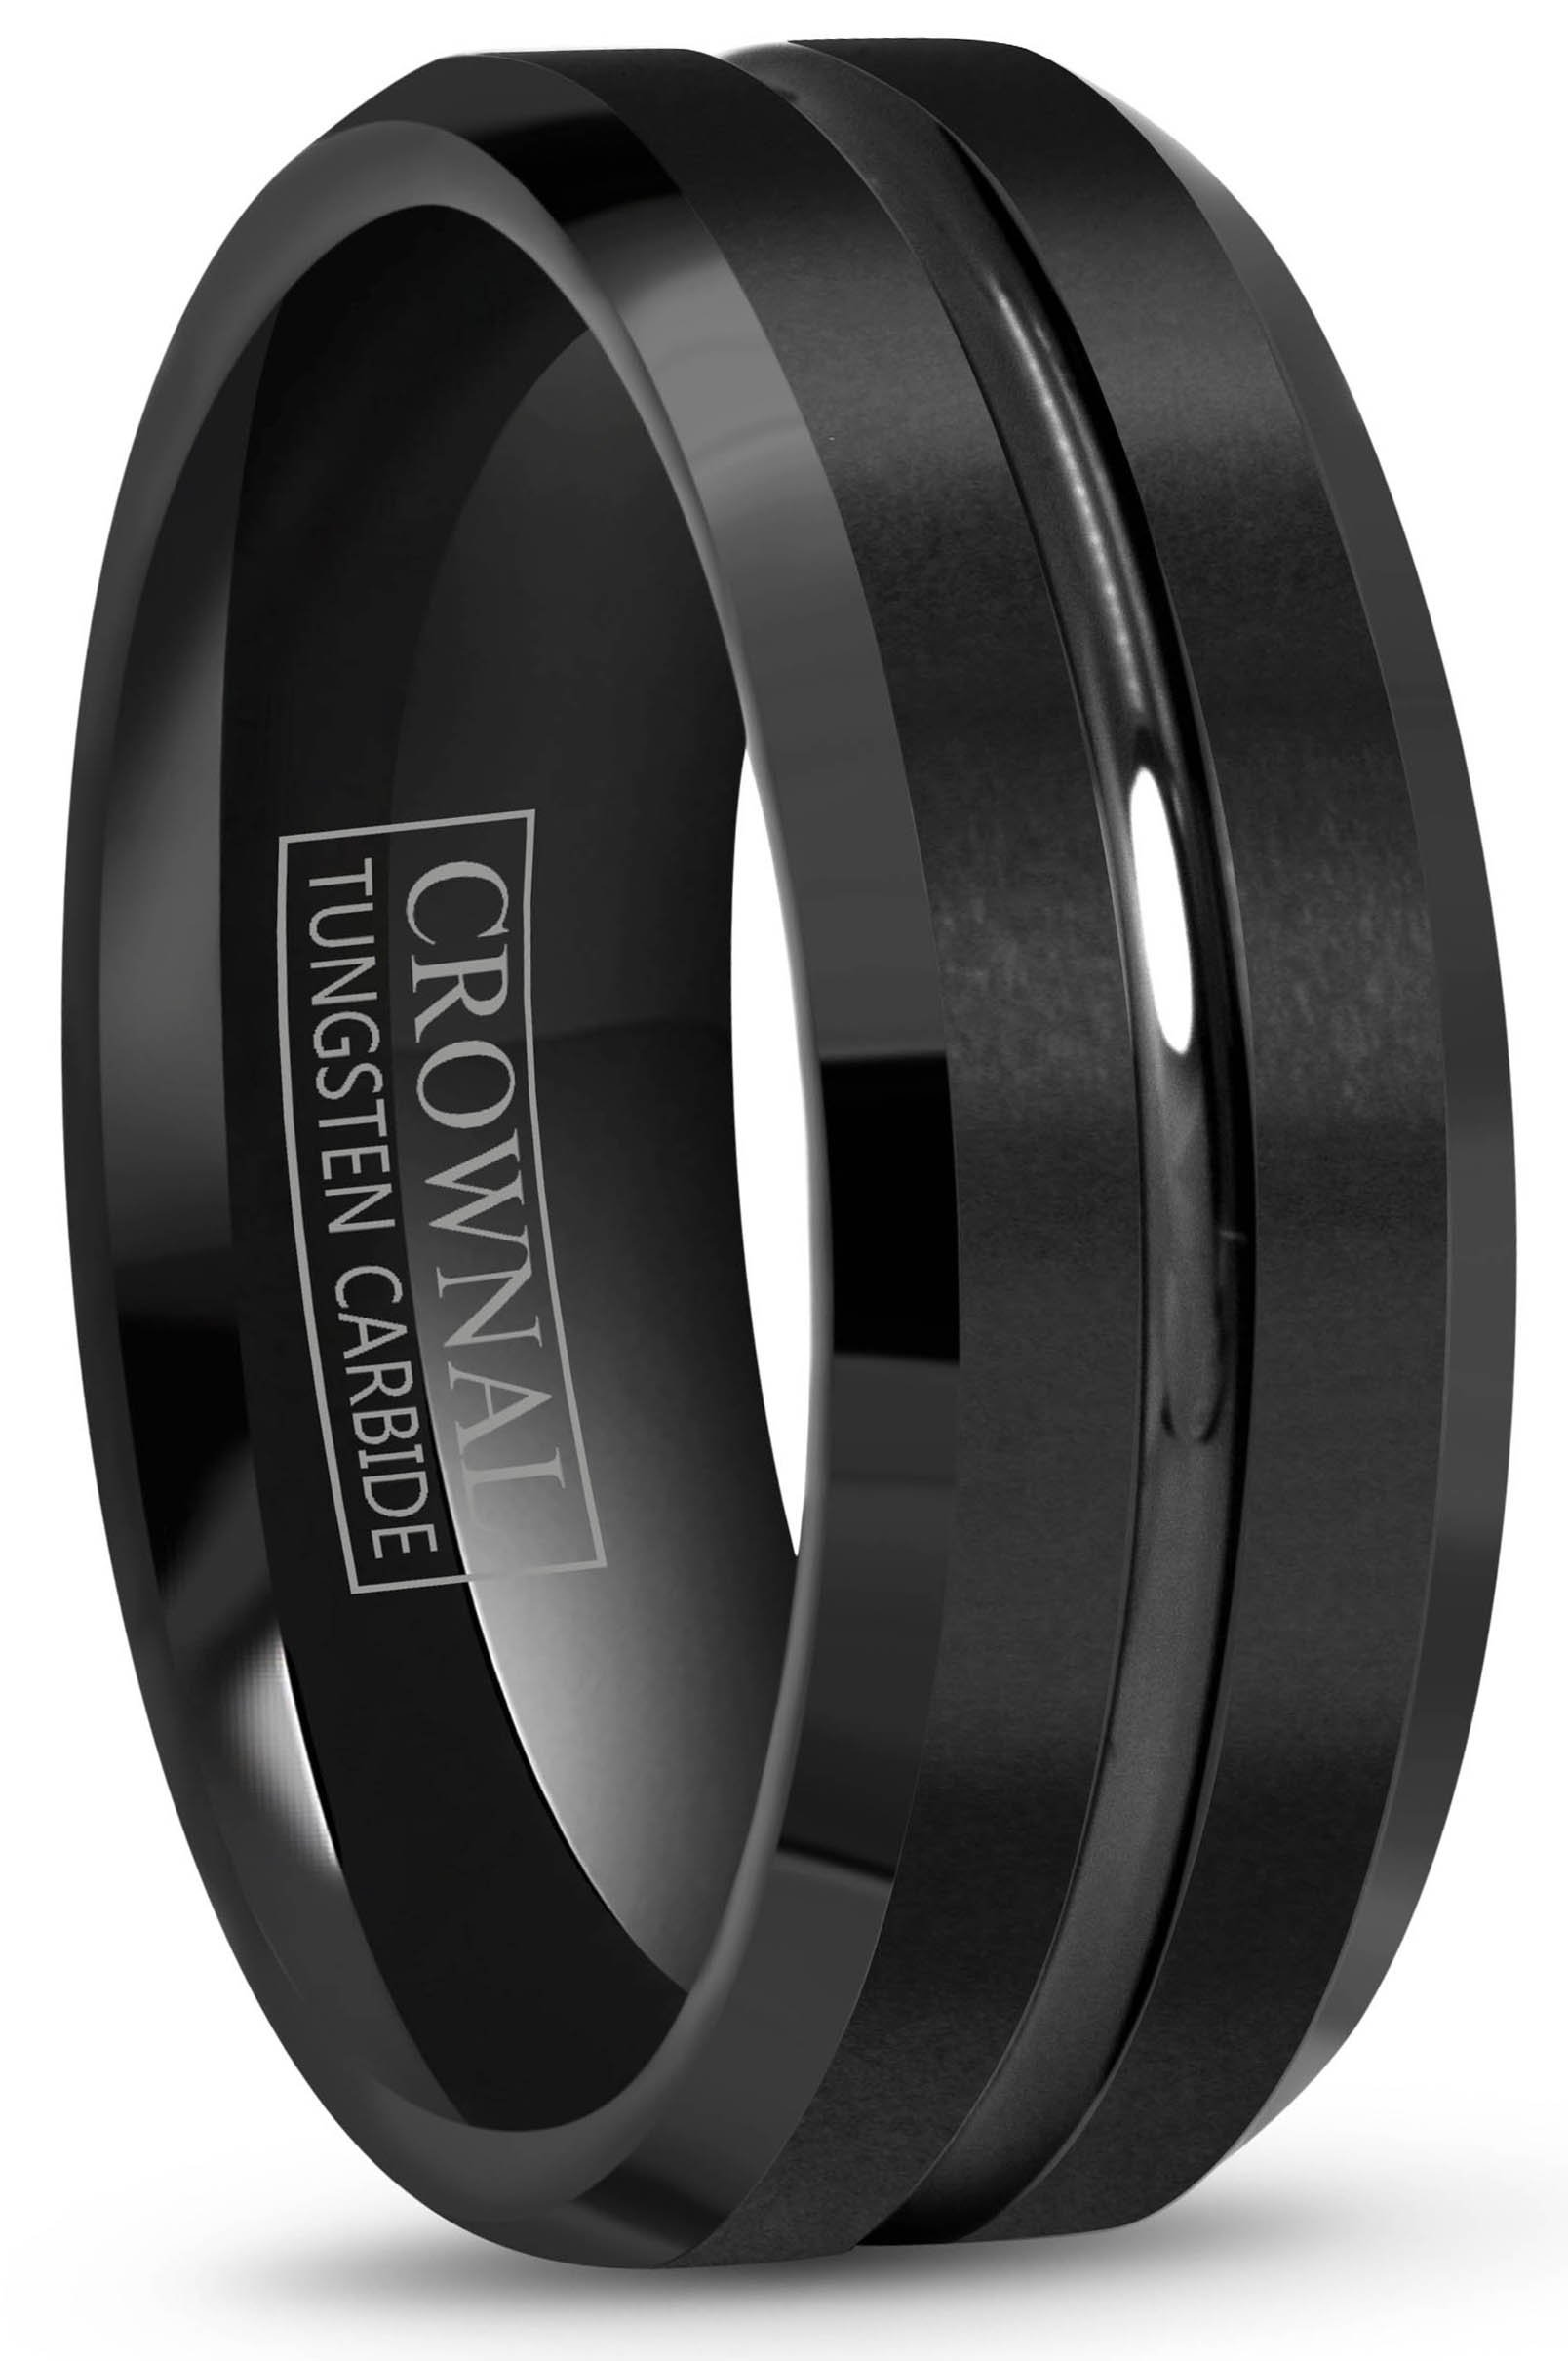 Crownal 4mm 6mm 8mm 10mm Black Tungsten Wedding Band Ring Men Women Beveled edges Polished Grooved Center Comfort Fit Size 4 To 17 (8mm,10.5)